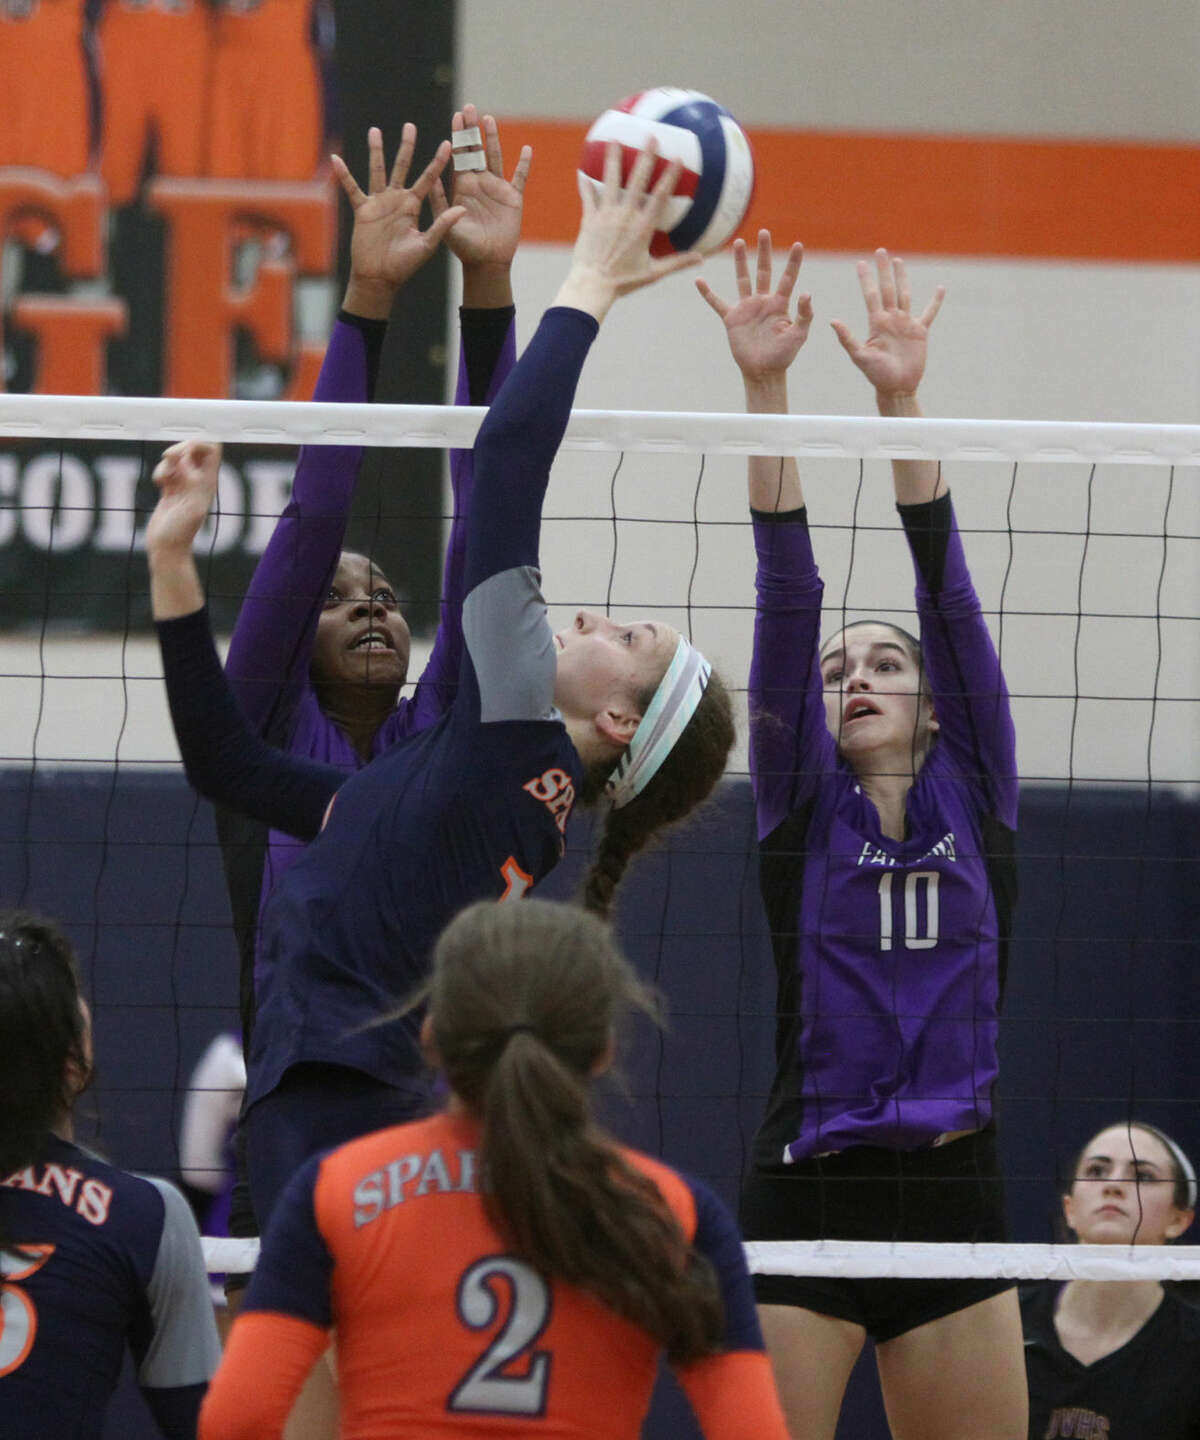 Seven Lakes' Camille Conner tips the ball against Jersey Village's Deyonna Evans and Lacie Aden during the 6A Area Volleyball Playoffs at Seven Lakes High School in Katy, Texas on Friday, November 7, 2014.